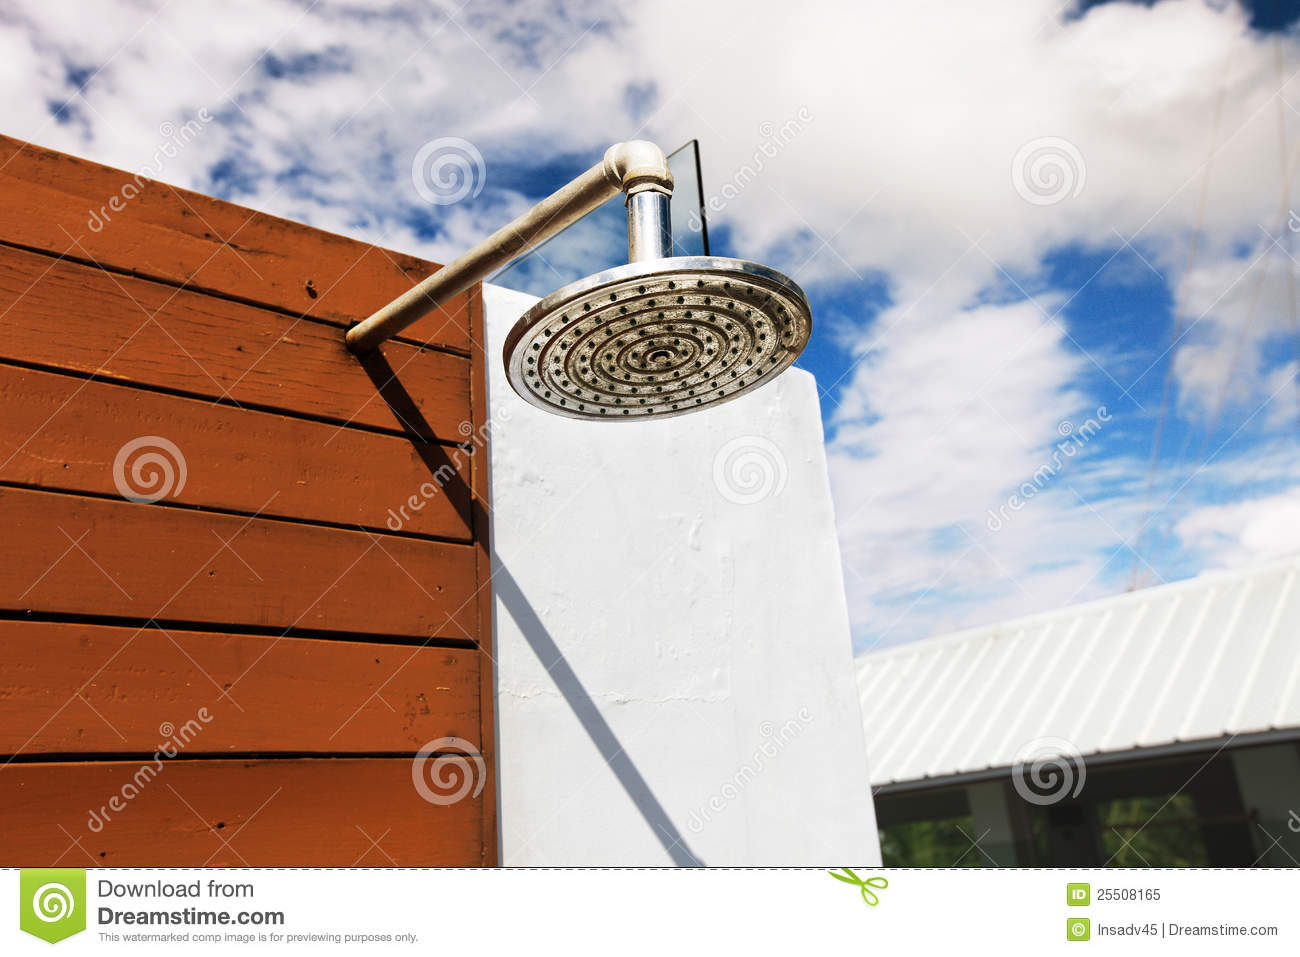 Swimming Pool Showering : Outdoor shower at swimming pool stock image